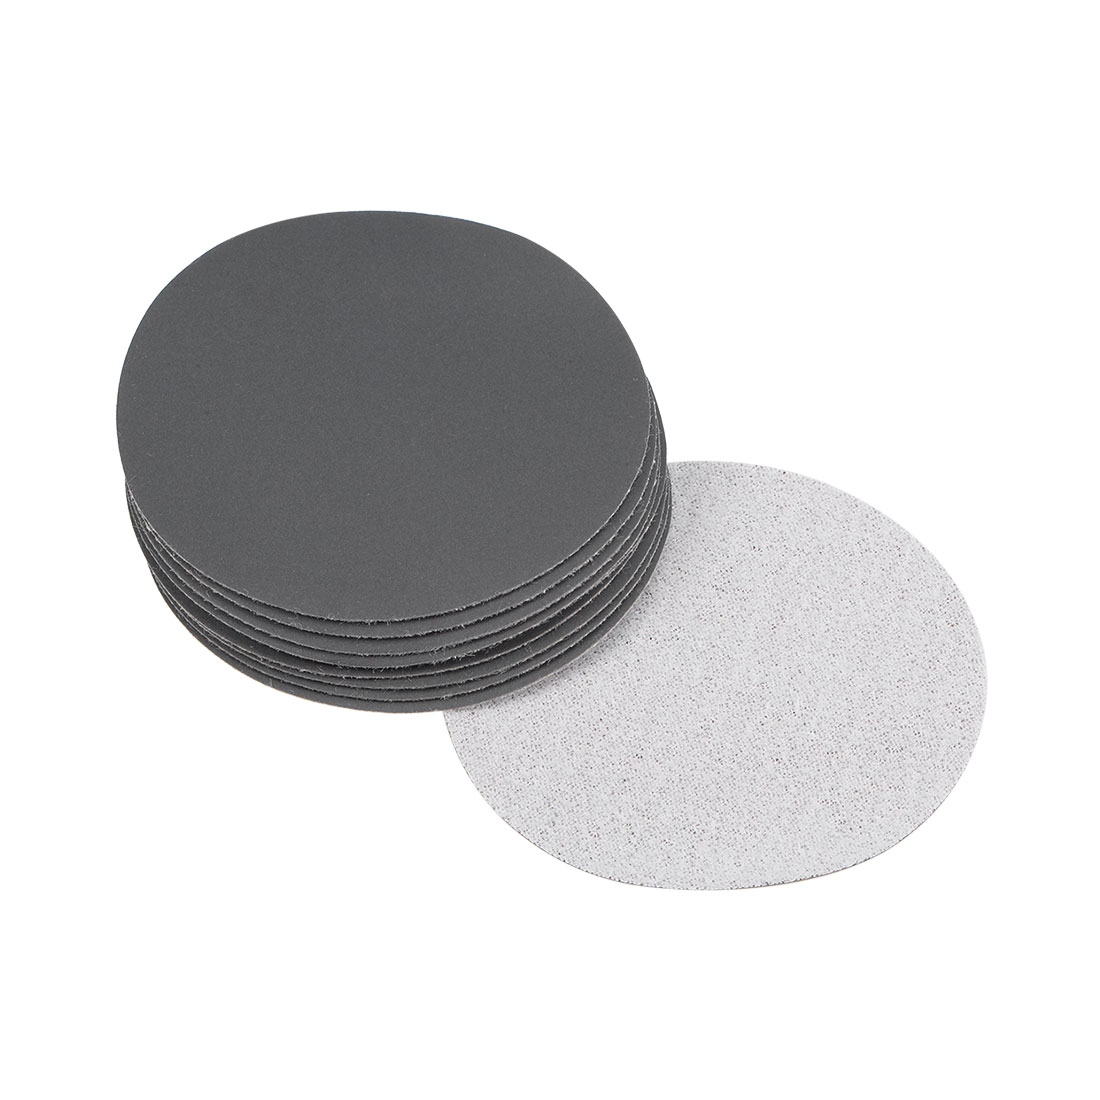 3 inch Wet Dry Discs 1000 Grit Hook and Loop Sanding Disc Silicon Carbide 10pcs